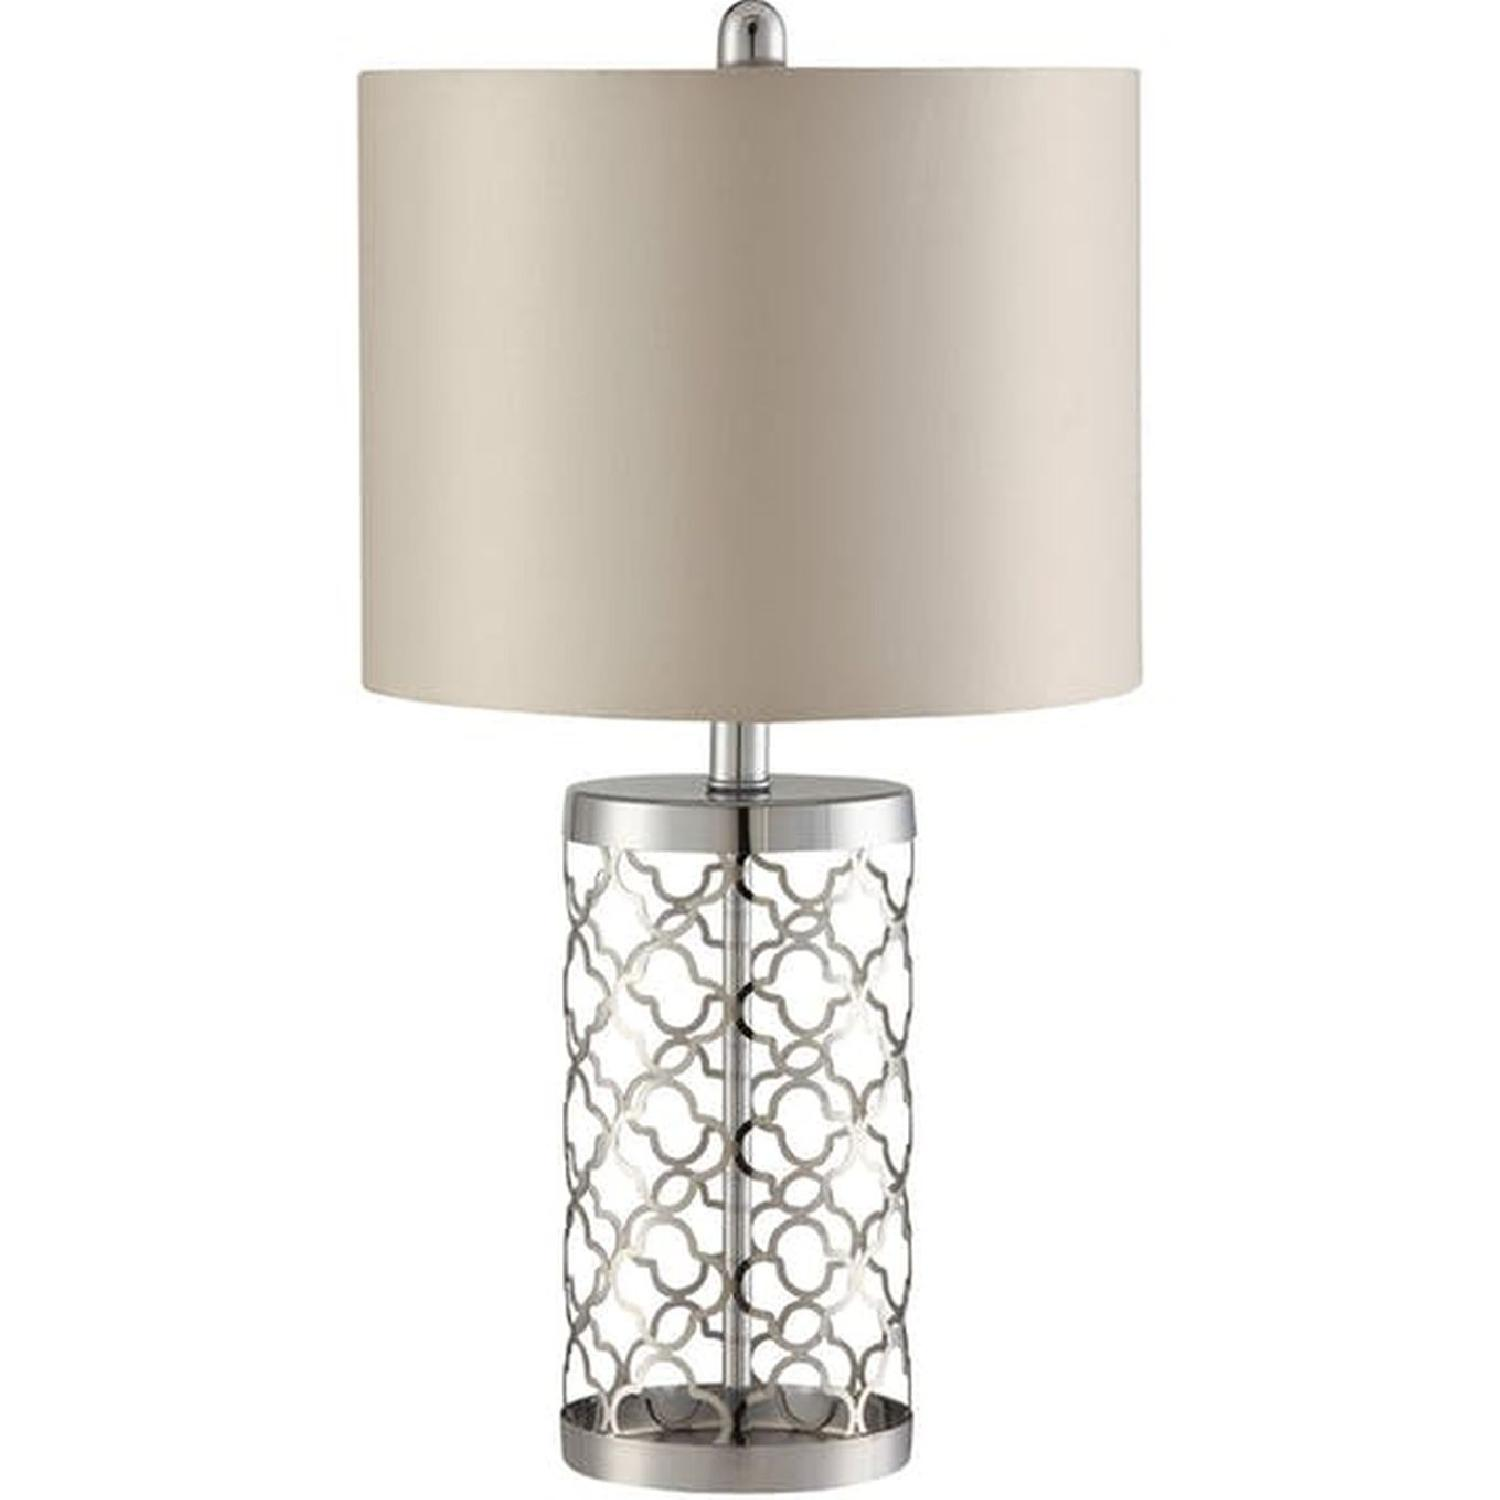 Table Lamp in Light Gold Base w/ Cut-Out Pattern - image-0